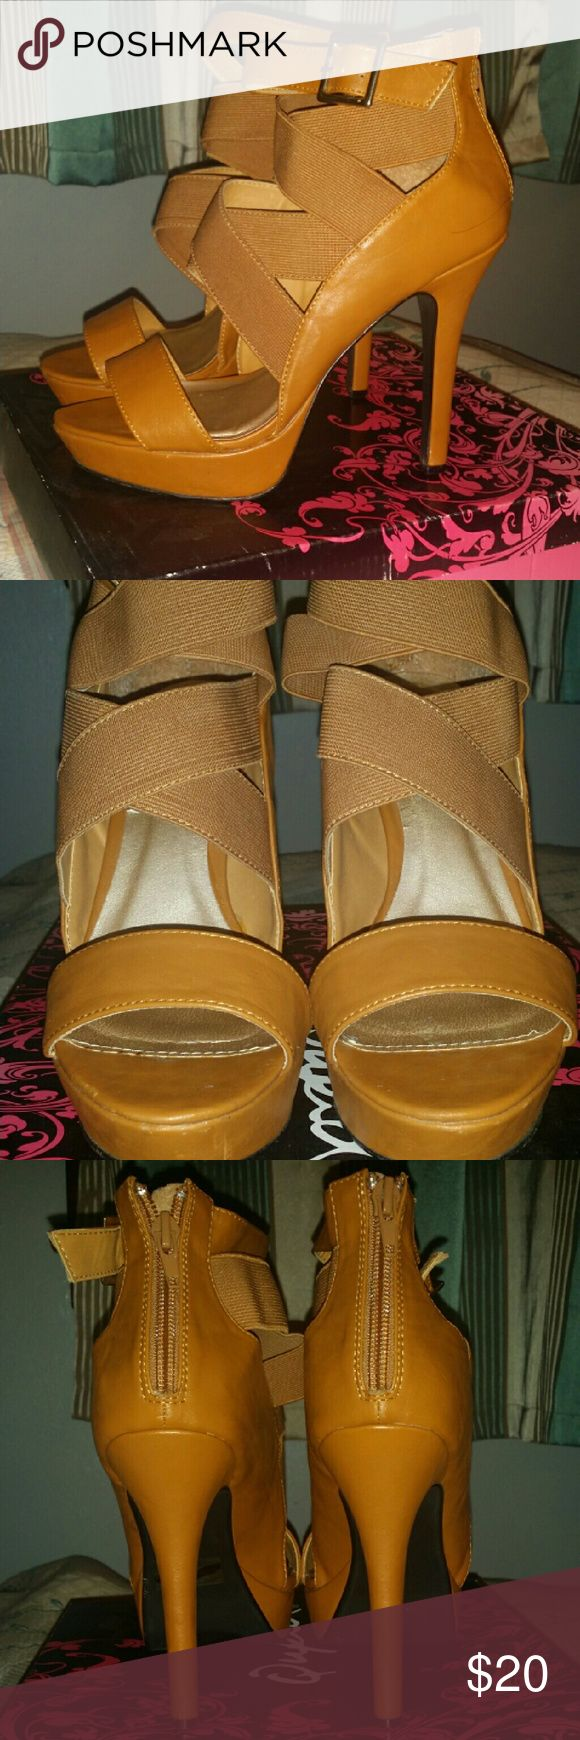 Size 8 Strappy Camel  high heeled sandals Size 8 Qupid high heeled sandals, 5 inch heel with one inch platform Qupid Shoes Heels